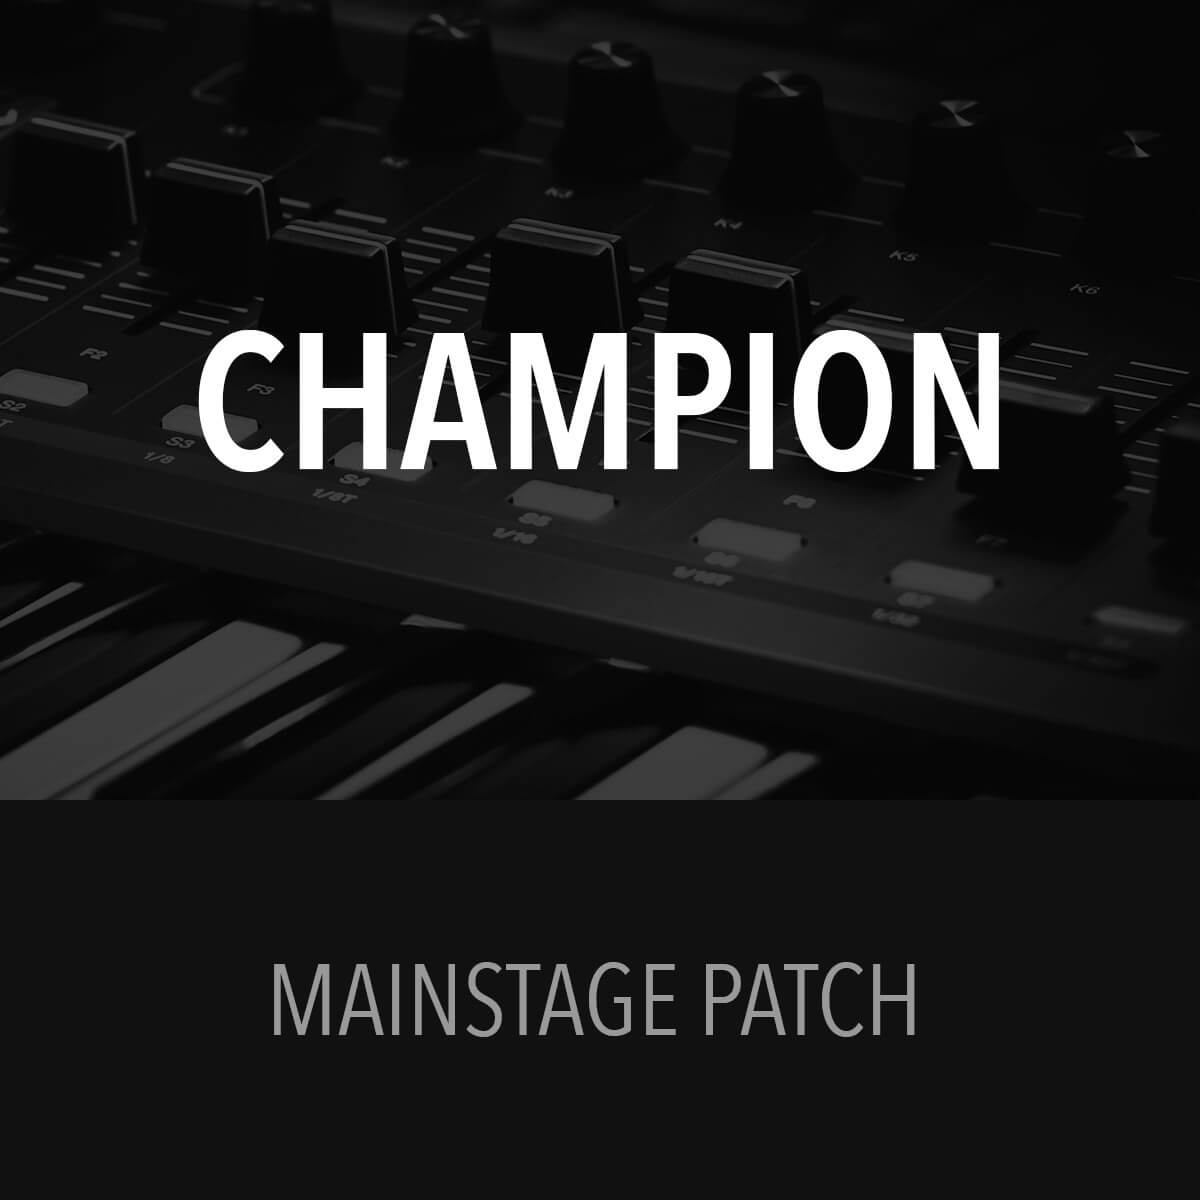 Champion - MainStage Patch - Bryan & Katie Torwalt